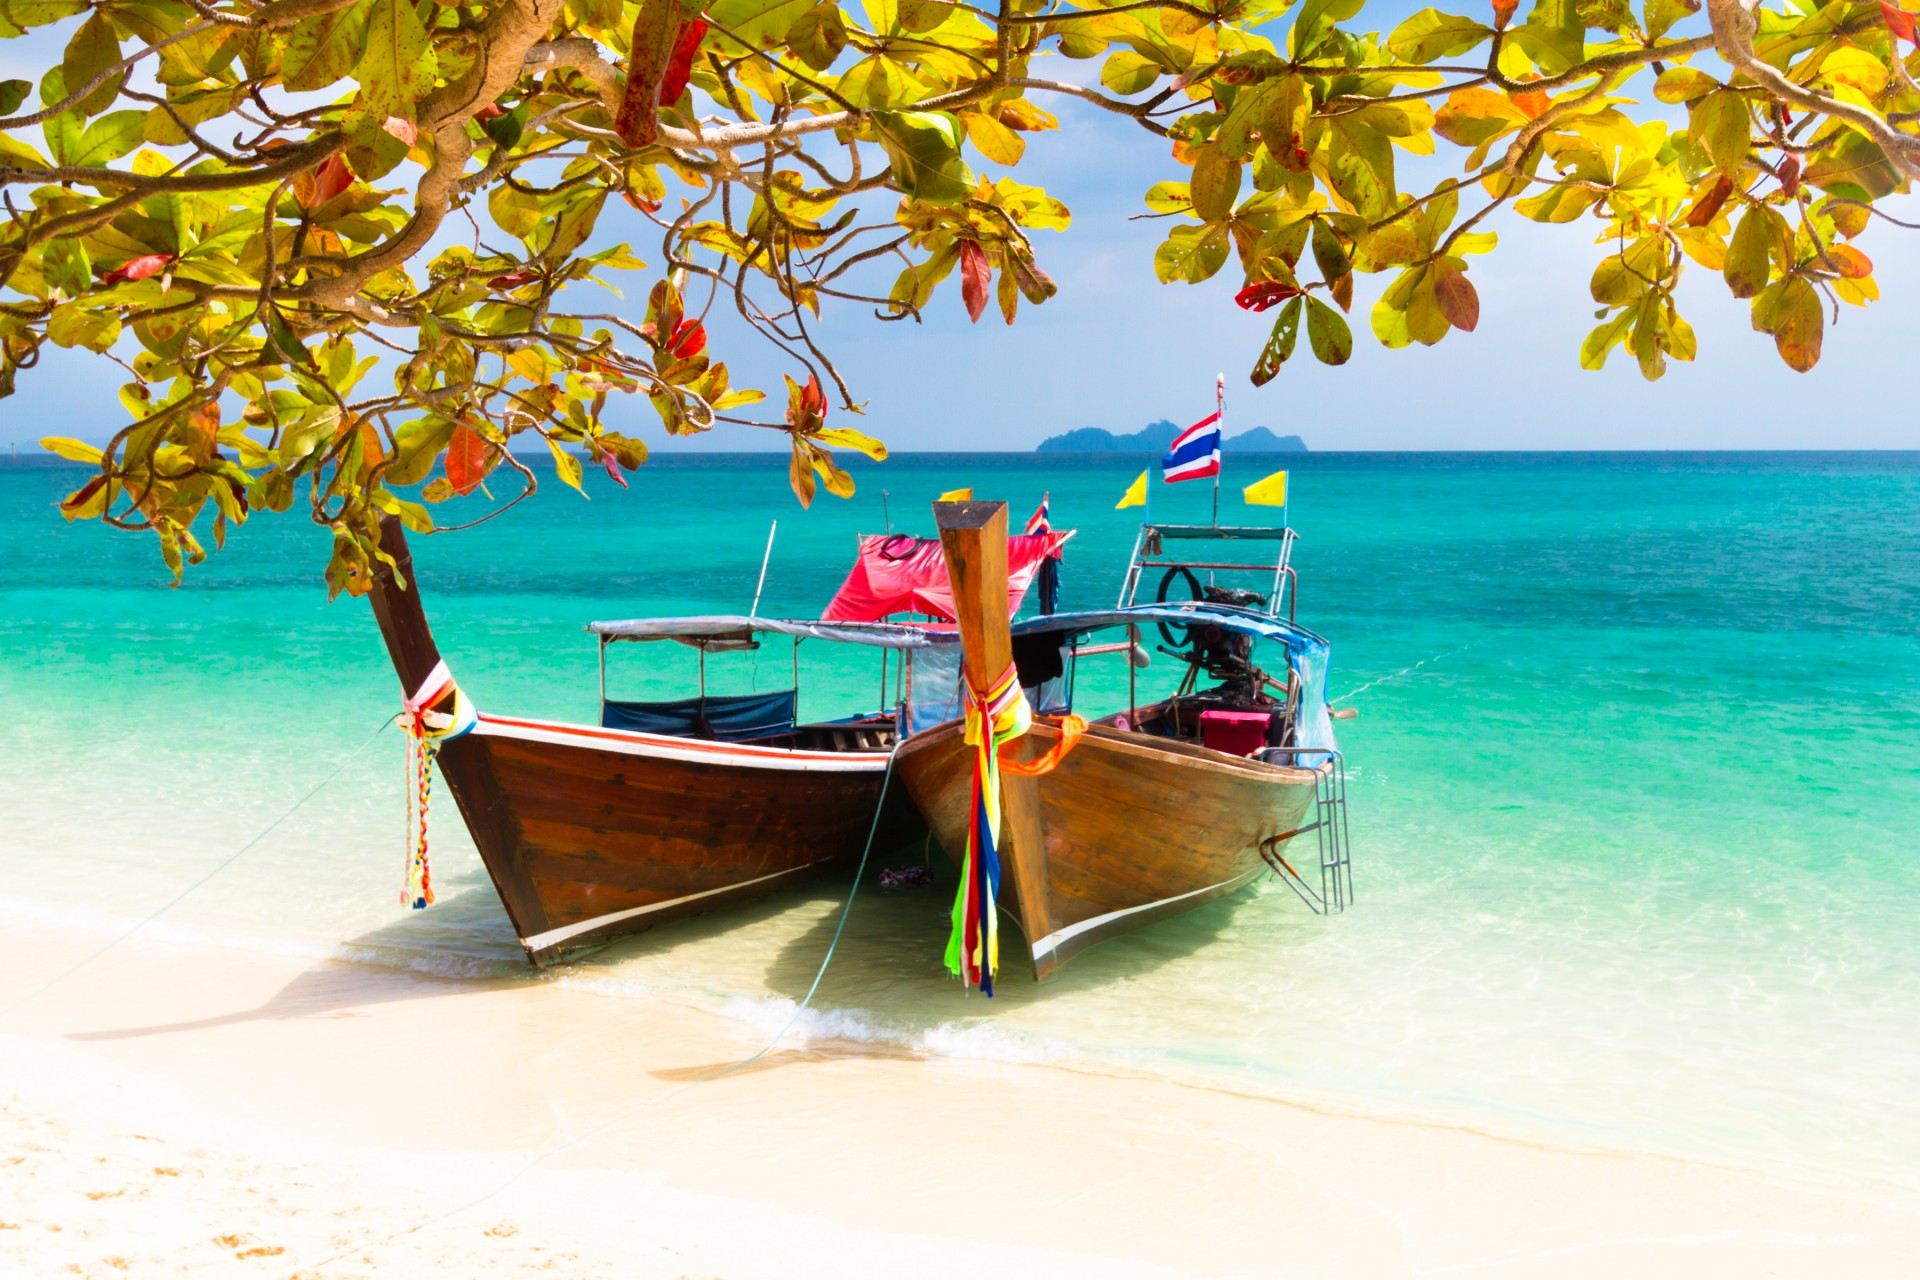 family adventure in Thailand: local wooden boats by the beach with beautiful, clear water